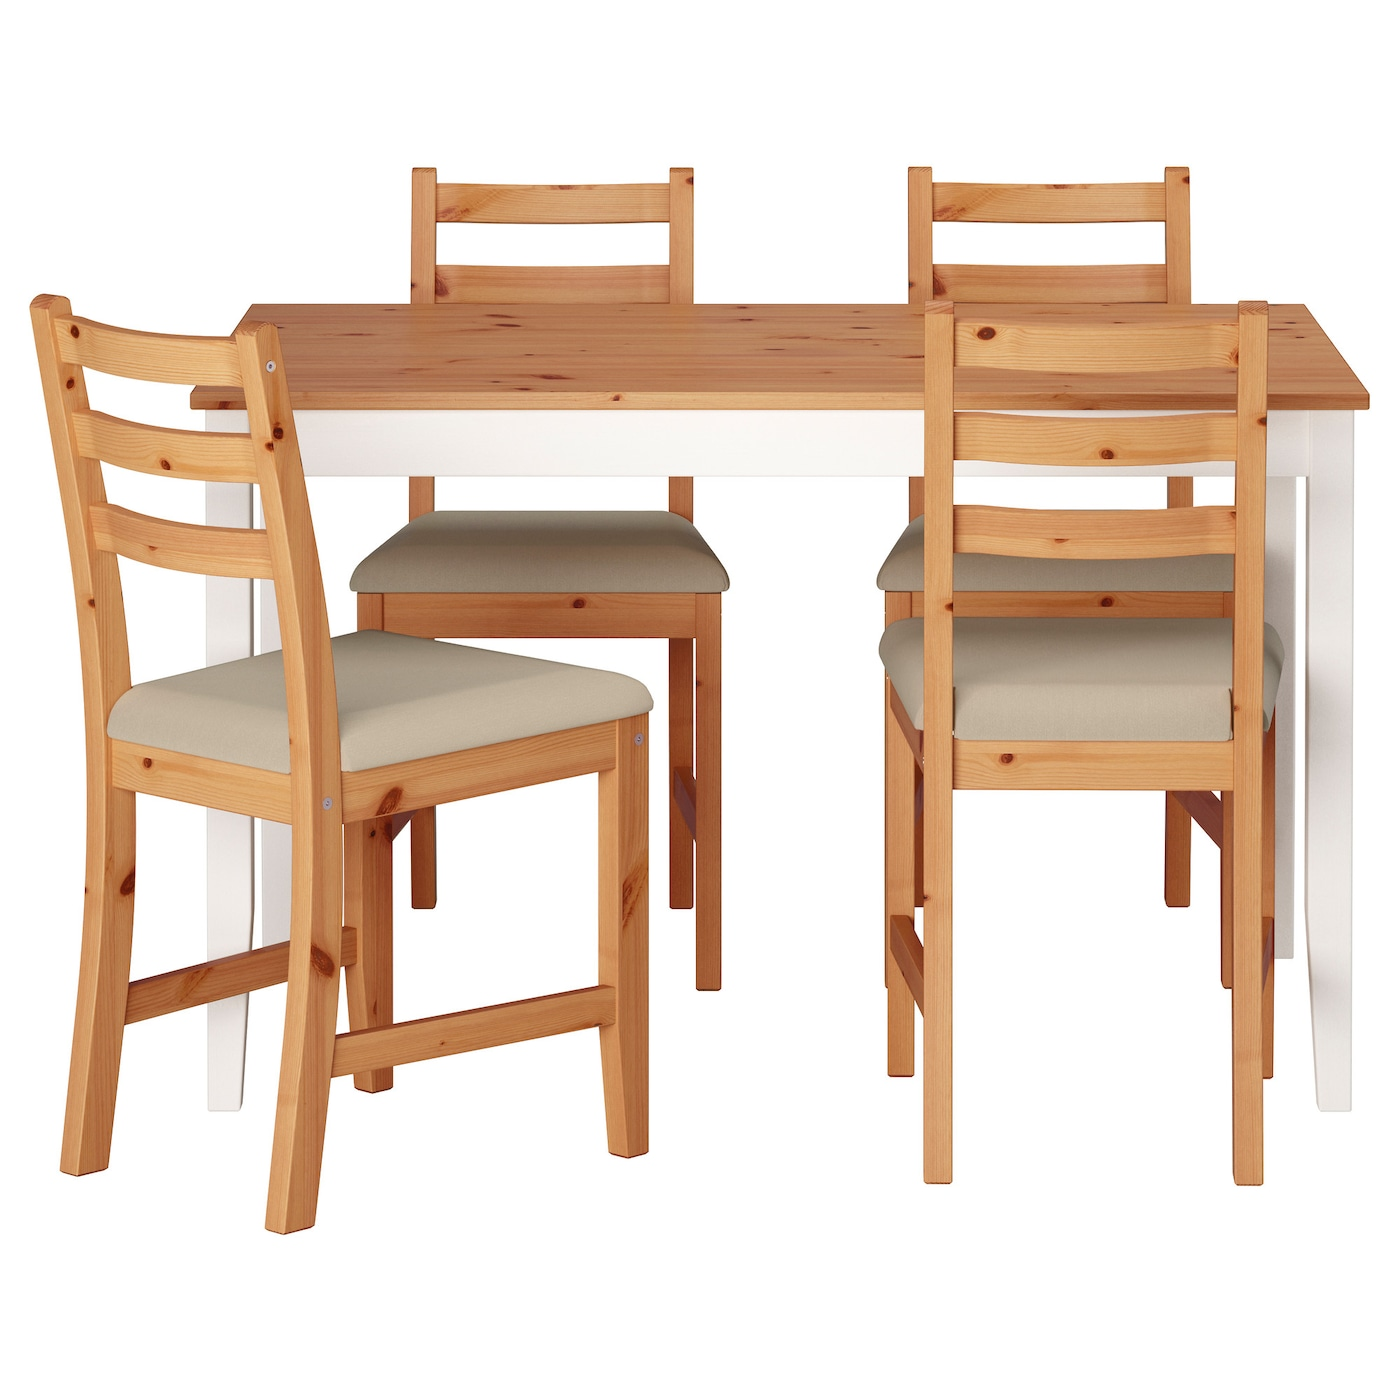 IKEA LERHAMN table and 4 chairs. Dining Table Sets   Dining Room Sets   IKEA